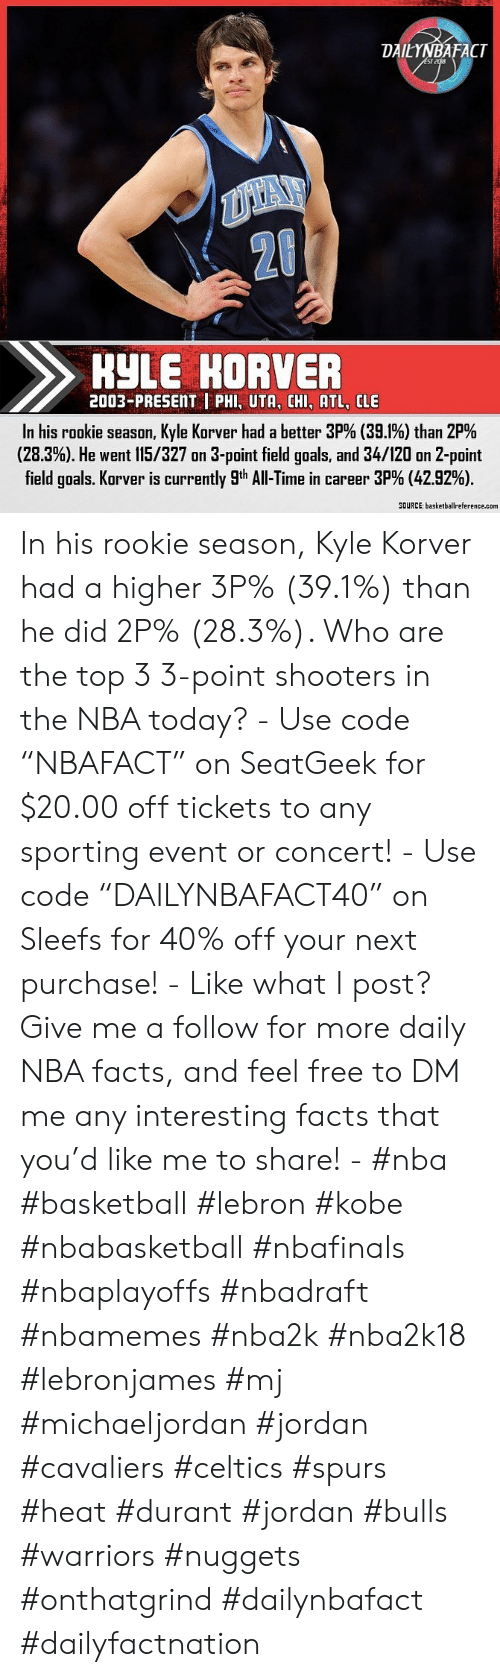 """Basketball, Facts, and Goals: DAILYNBAFACT  ST  2t  HYLE HORVER  2003-PRESENT  PHI, UTA, CHI, ATL, CLE  In his rookie season, Kyle Korver had a better 39% (39.1%) than 29%  (28.3%). He went l15/327 on 3-point field goals, and 34/120 on 2-point  field goals. Korver is currently 9th All-Time in career 39% (42.92%).  SOURCE: basketballreference.com In his rookie season, Kyle Korver had a higher 3P% (39.1%) than he did 2P% (28.3%). Who are the top 3 3-point shooters in the NBA today? - Use code """"NBAFACT"""" on SeatGeek for $20.00 off tickets to any sporting event or concert! - Use code """"DAILYNBAFACT40"""" on Sleefs for 40% off your next purchase! - Like what I post? Give me a follow for more daily NBA facts, and feel free to DM me any interesting facts that you'd like me to share! - #nba #basketball #lebron #kobe #nbabasketball #nbafinals #nbaplayoffs #nbadraft #nbamemes #nba2k #nba2k18 #lebronjames #mj #michaeljordan #jordan #cavaliers #celtics #spurs #heat #durant #jordan #bulls #warriors #nuggets #onthatgrind #dailynbafact #dailyfactnation"""